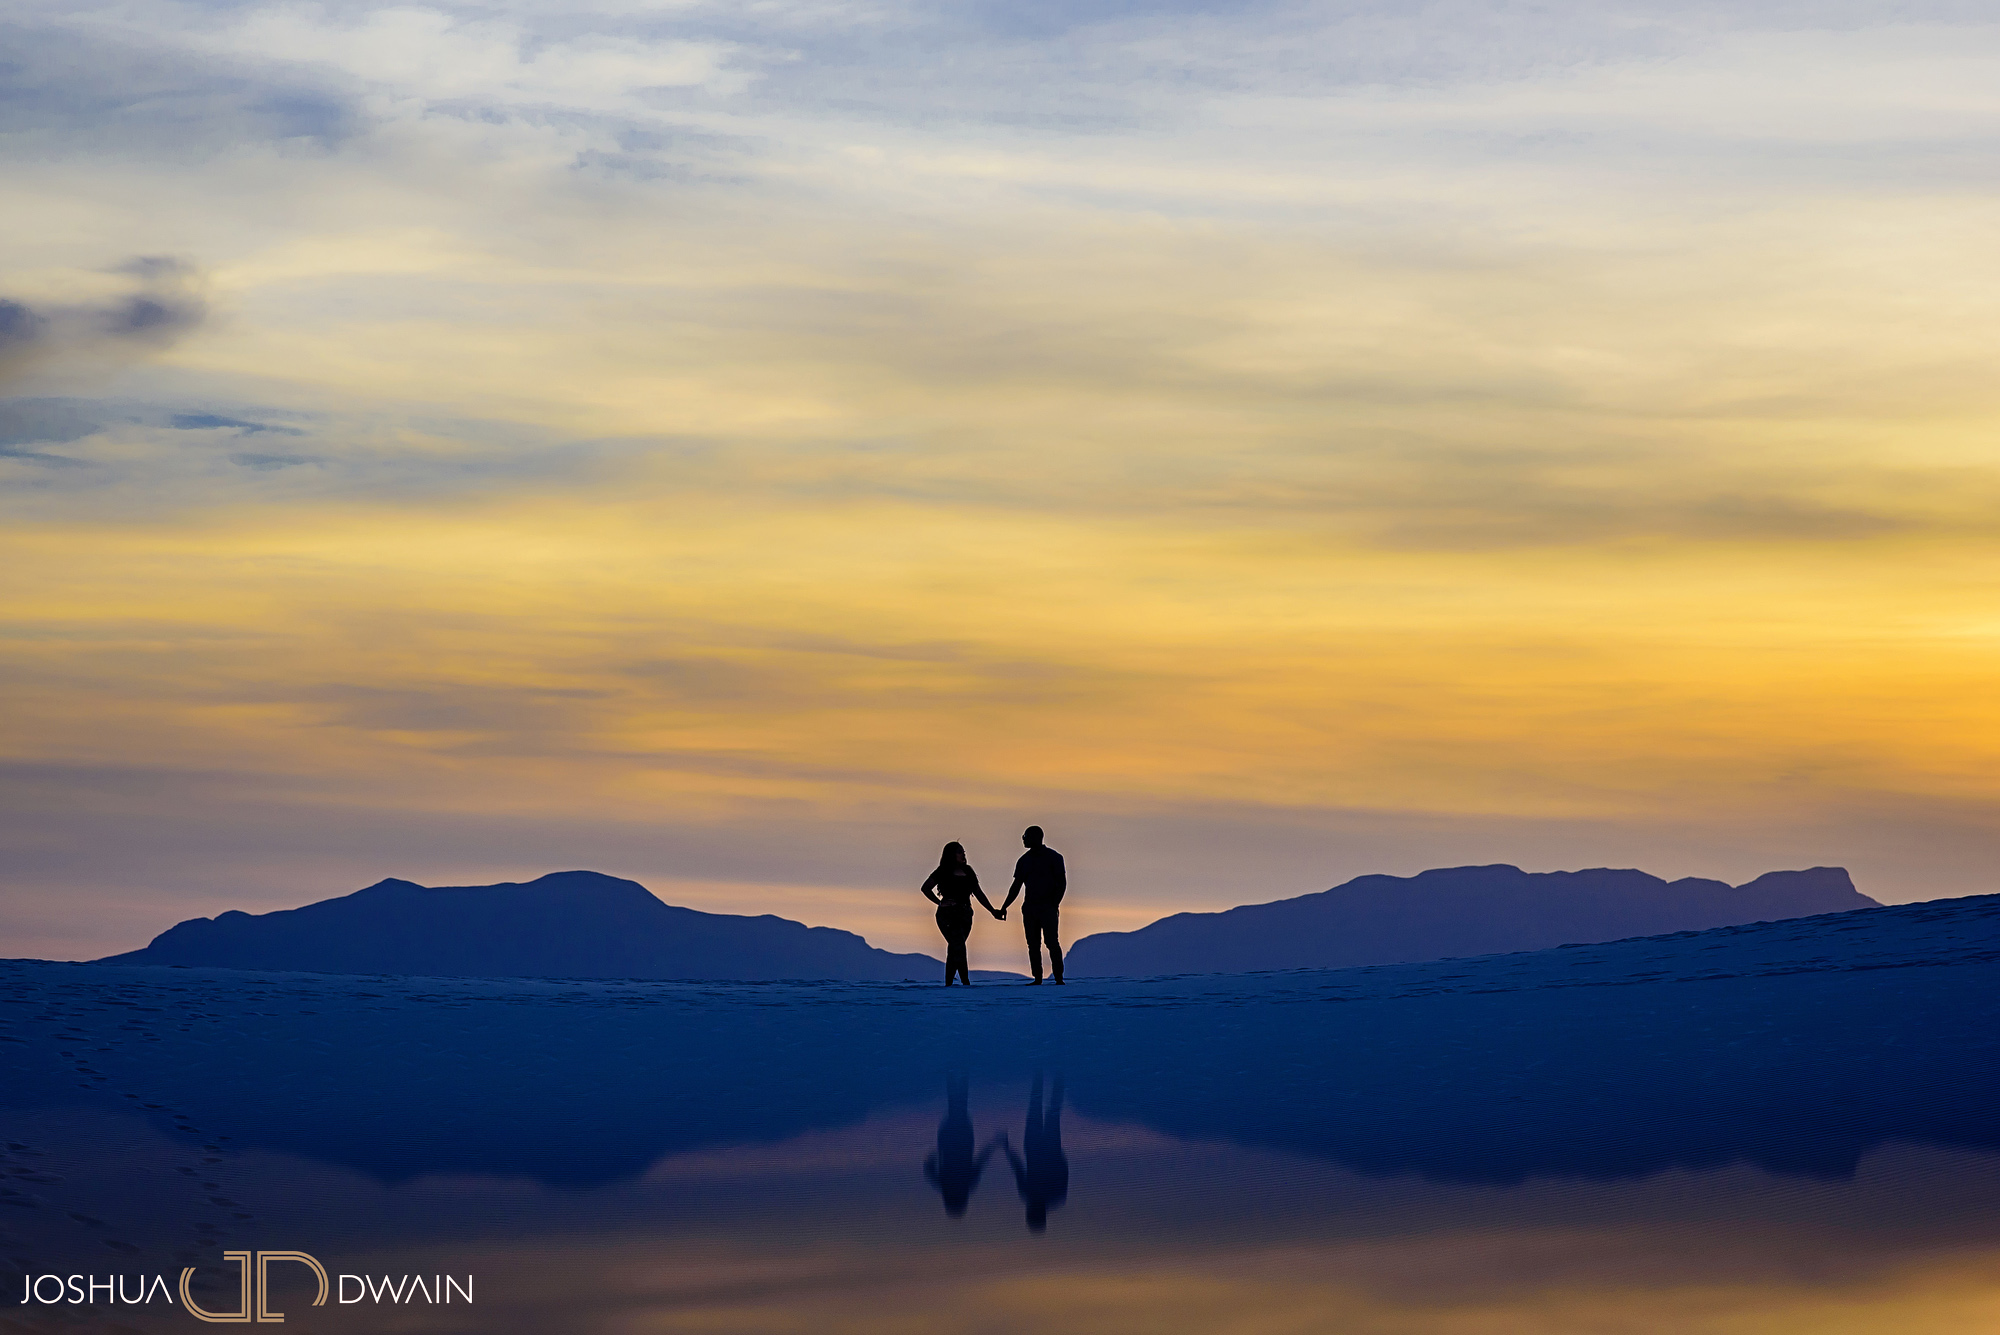 brianna-william-11-white-sands-monument-national-park-new-mexico-engagement-photographer-joshua-dwain-